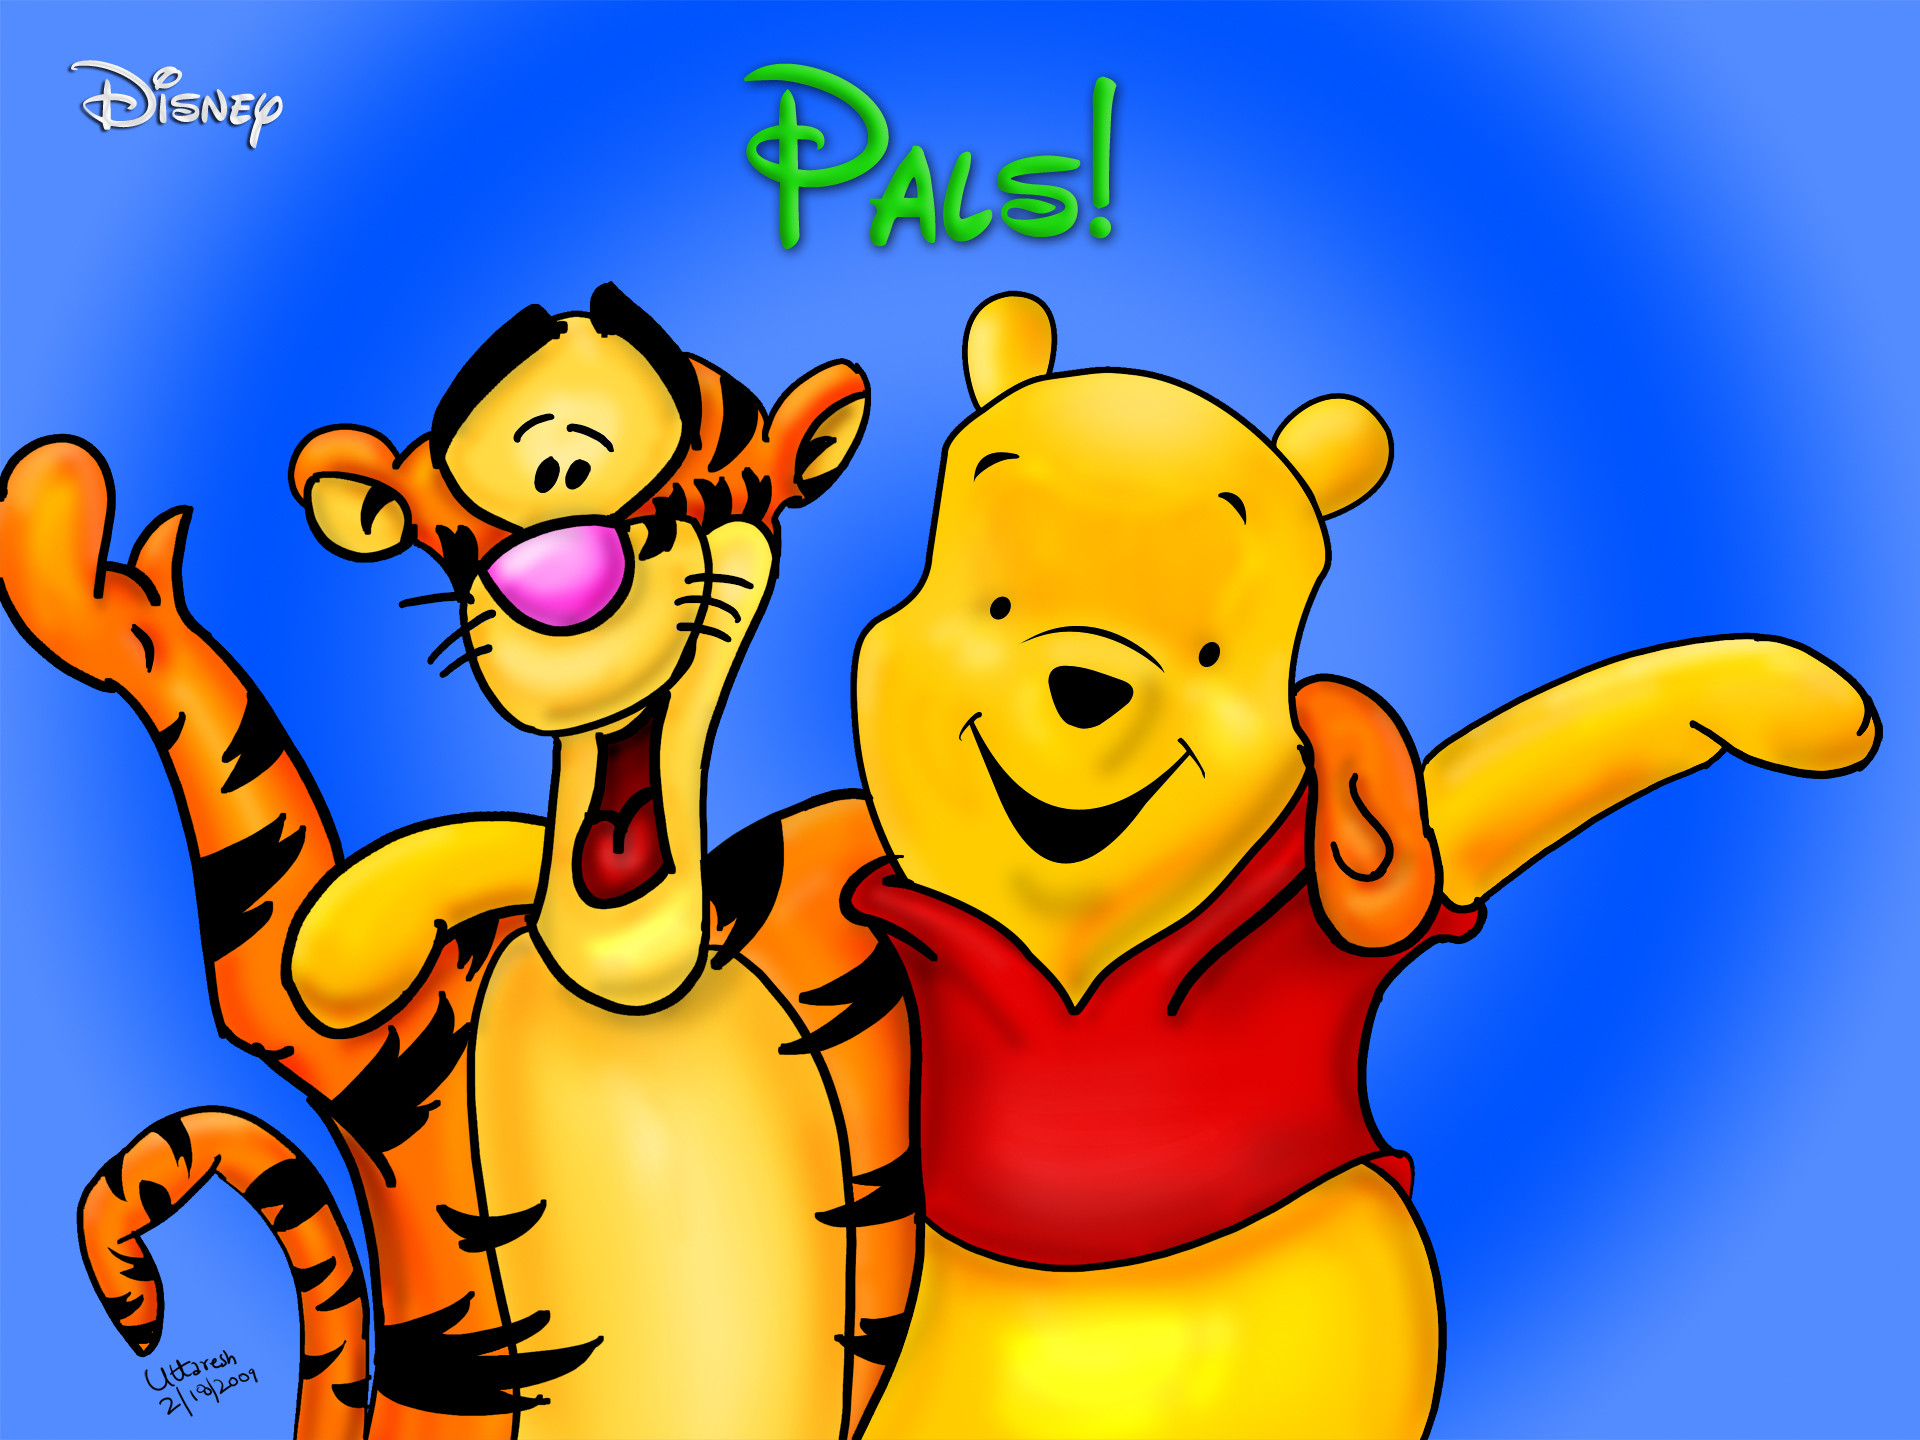 It's just an image of Persnickety Pooh Bear Images